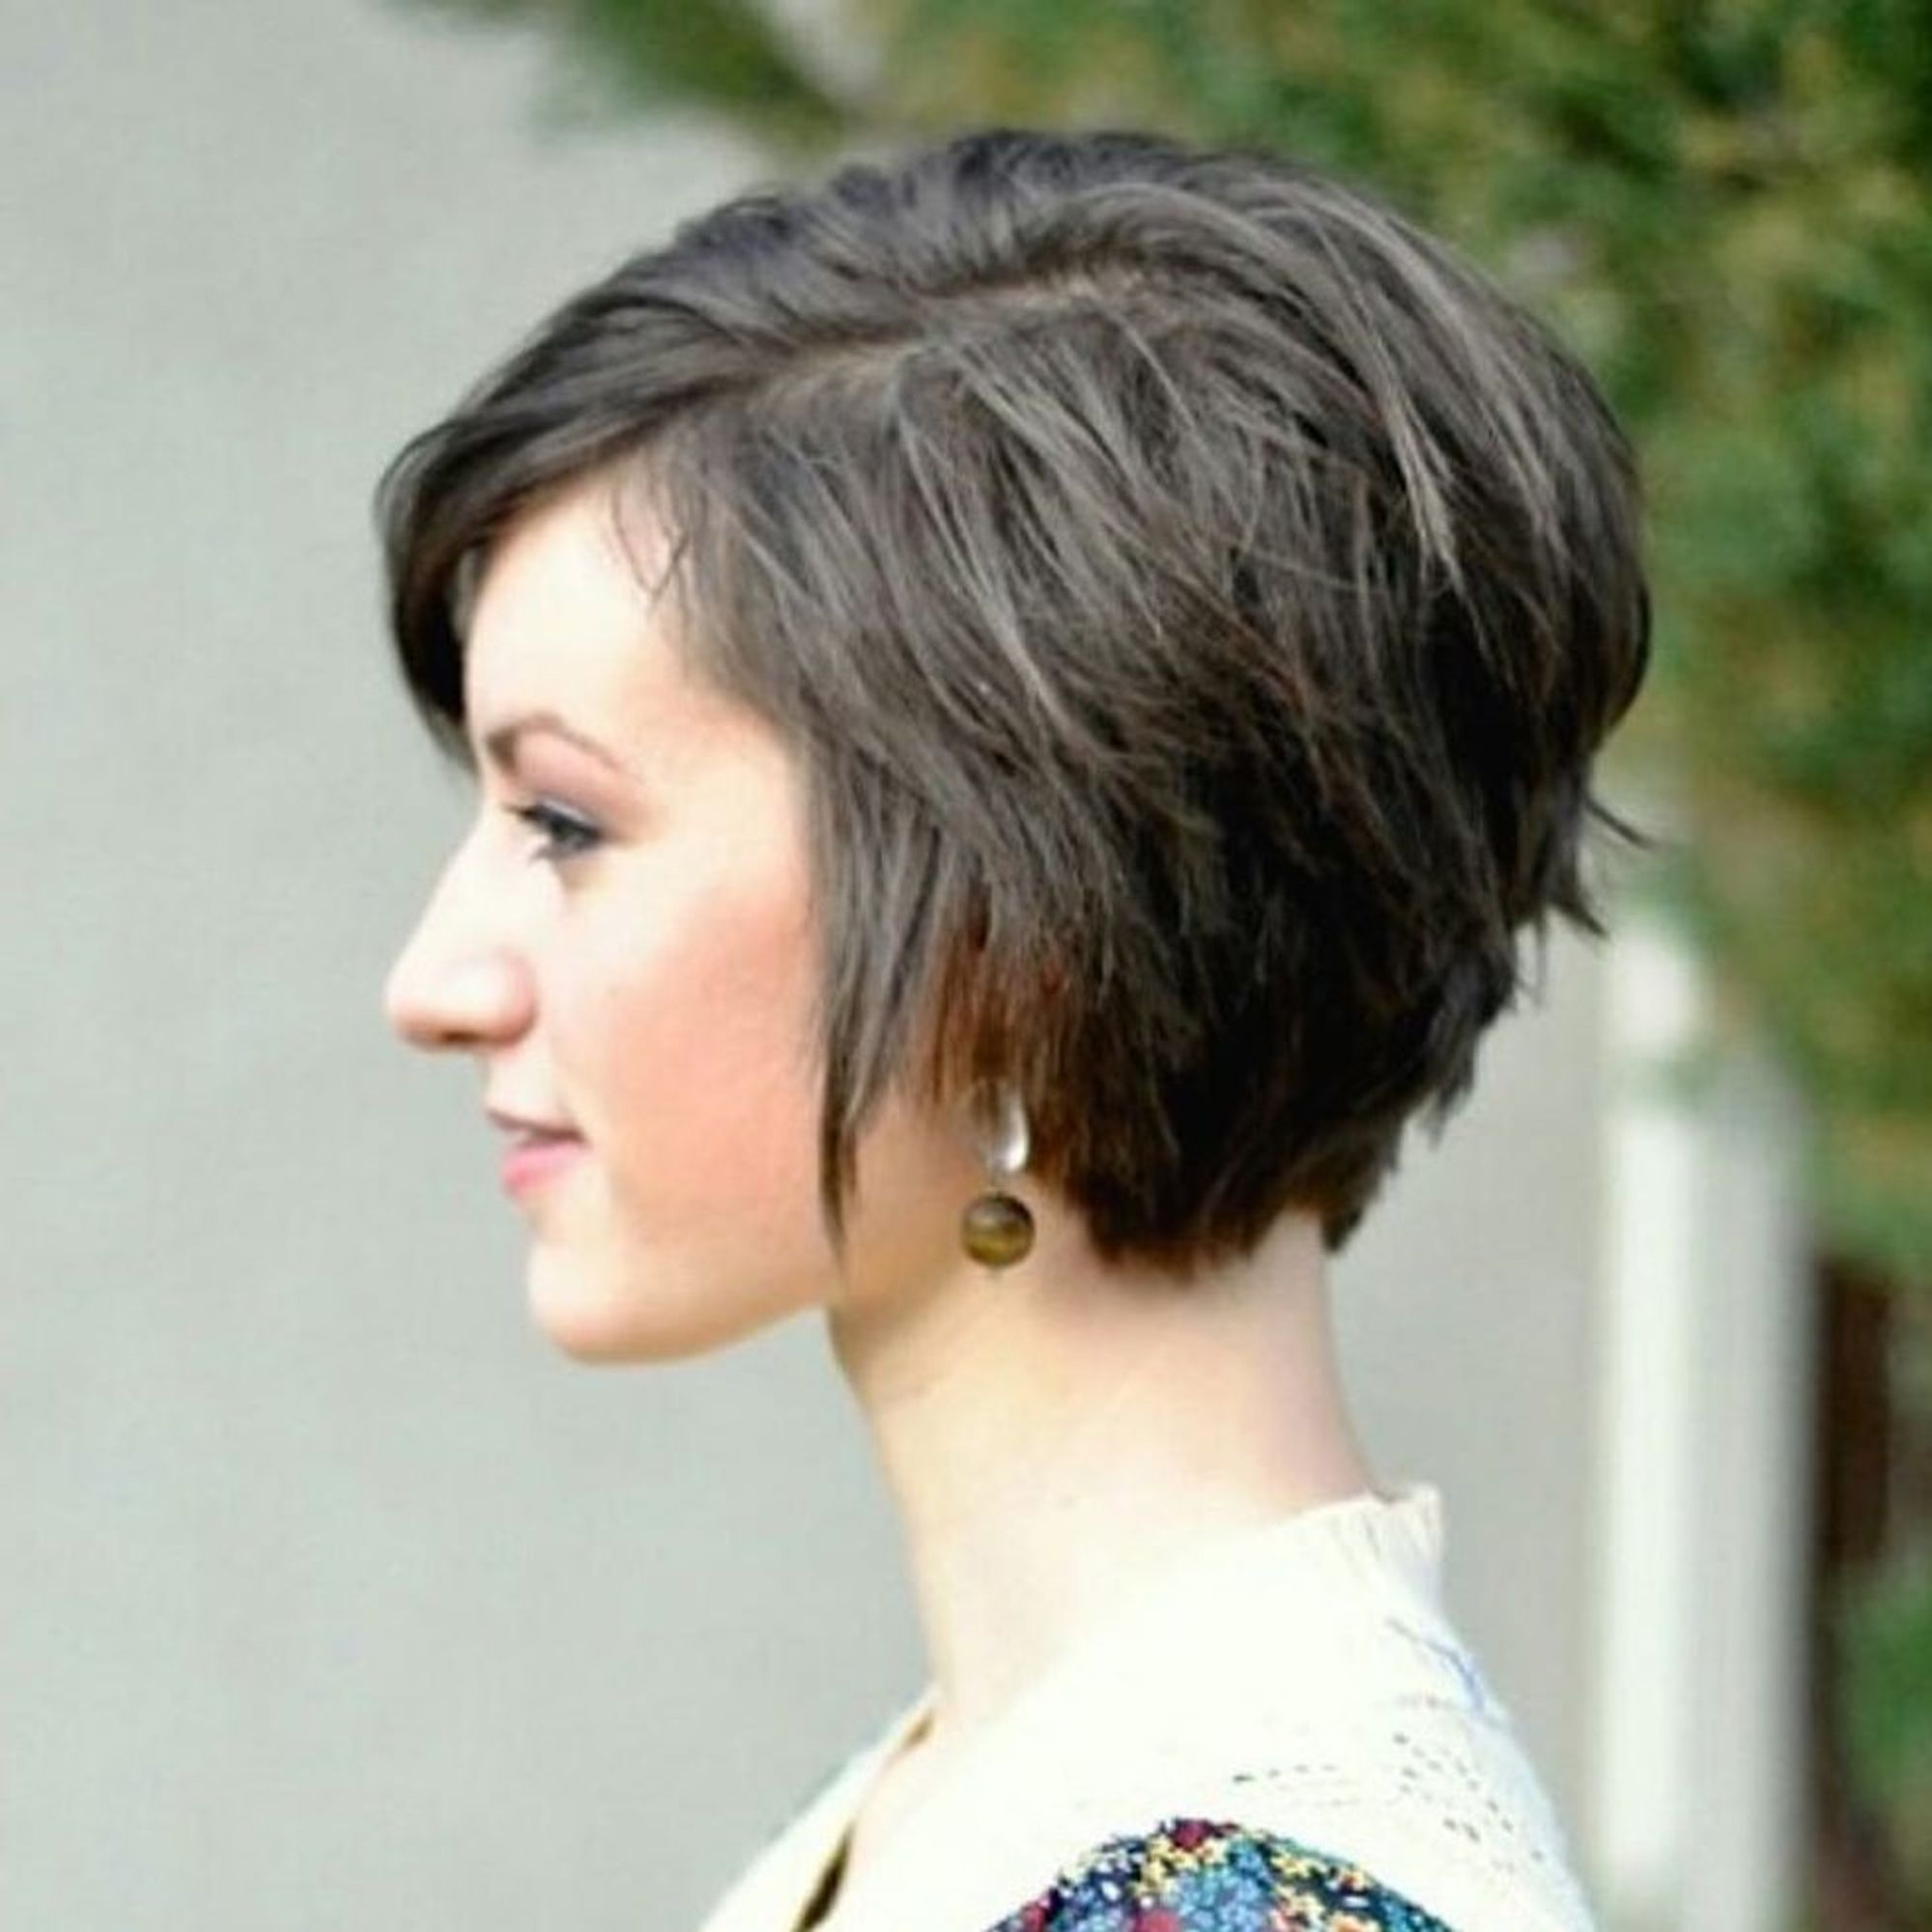 10 Styling Tips + Products for Growing Out a Pixie Cut - Brit + Co